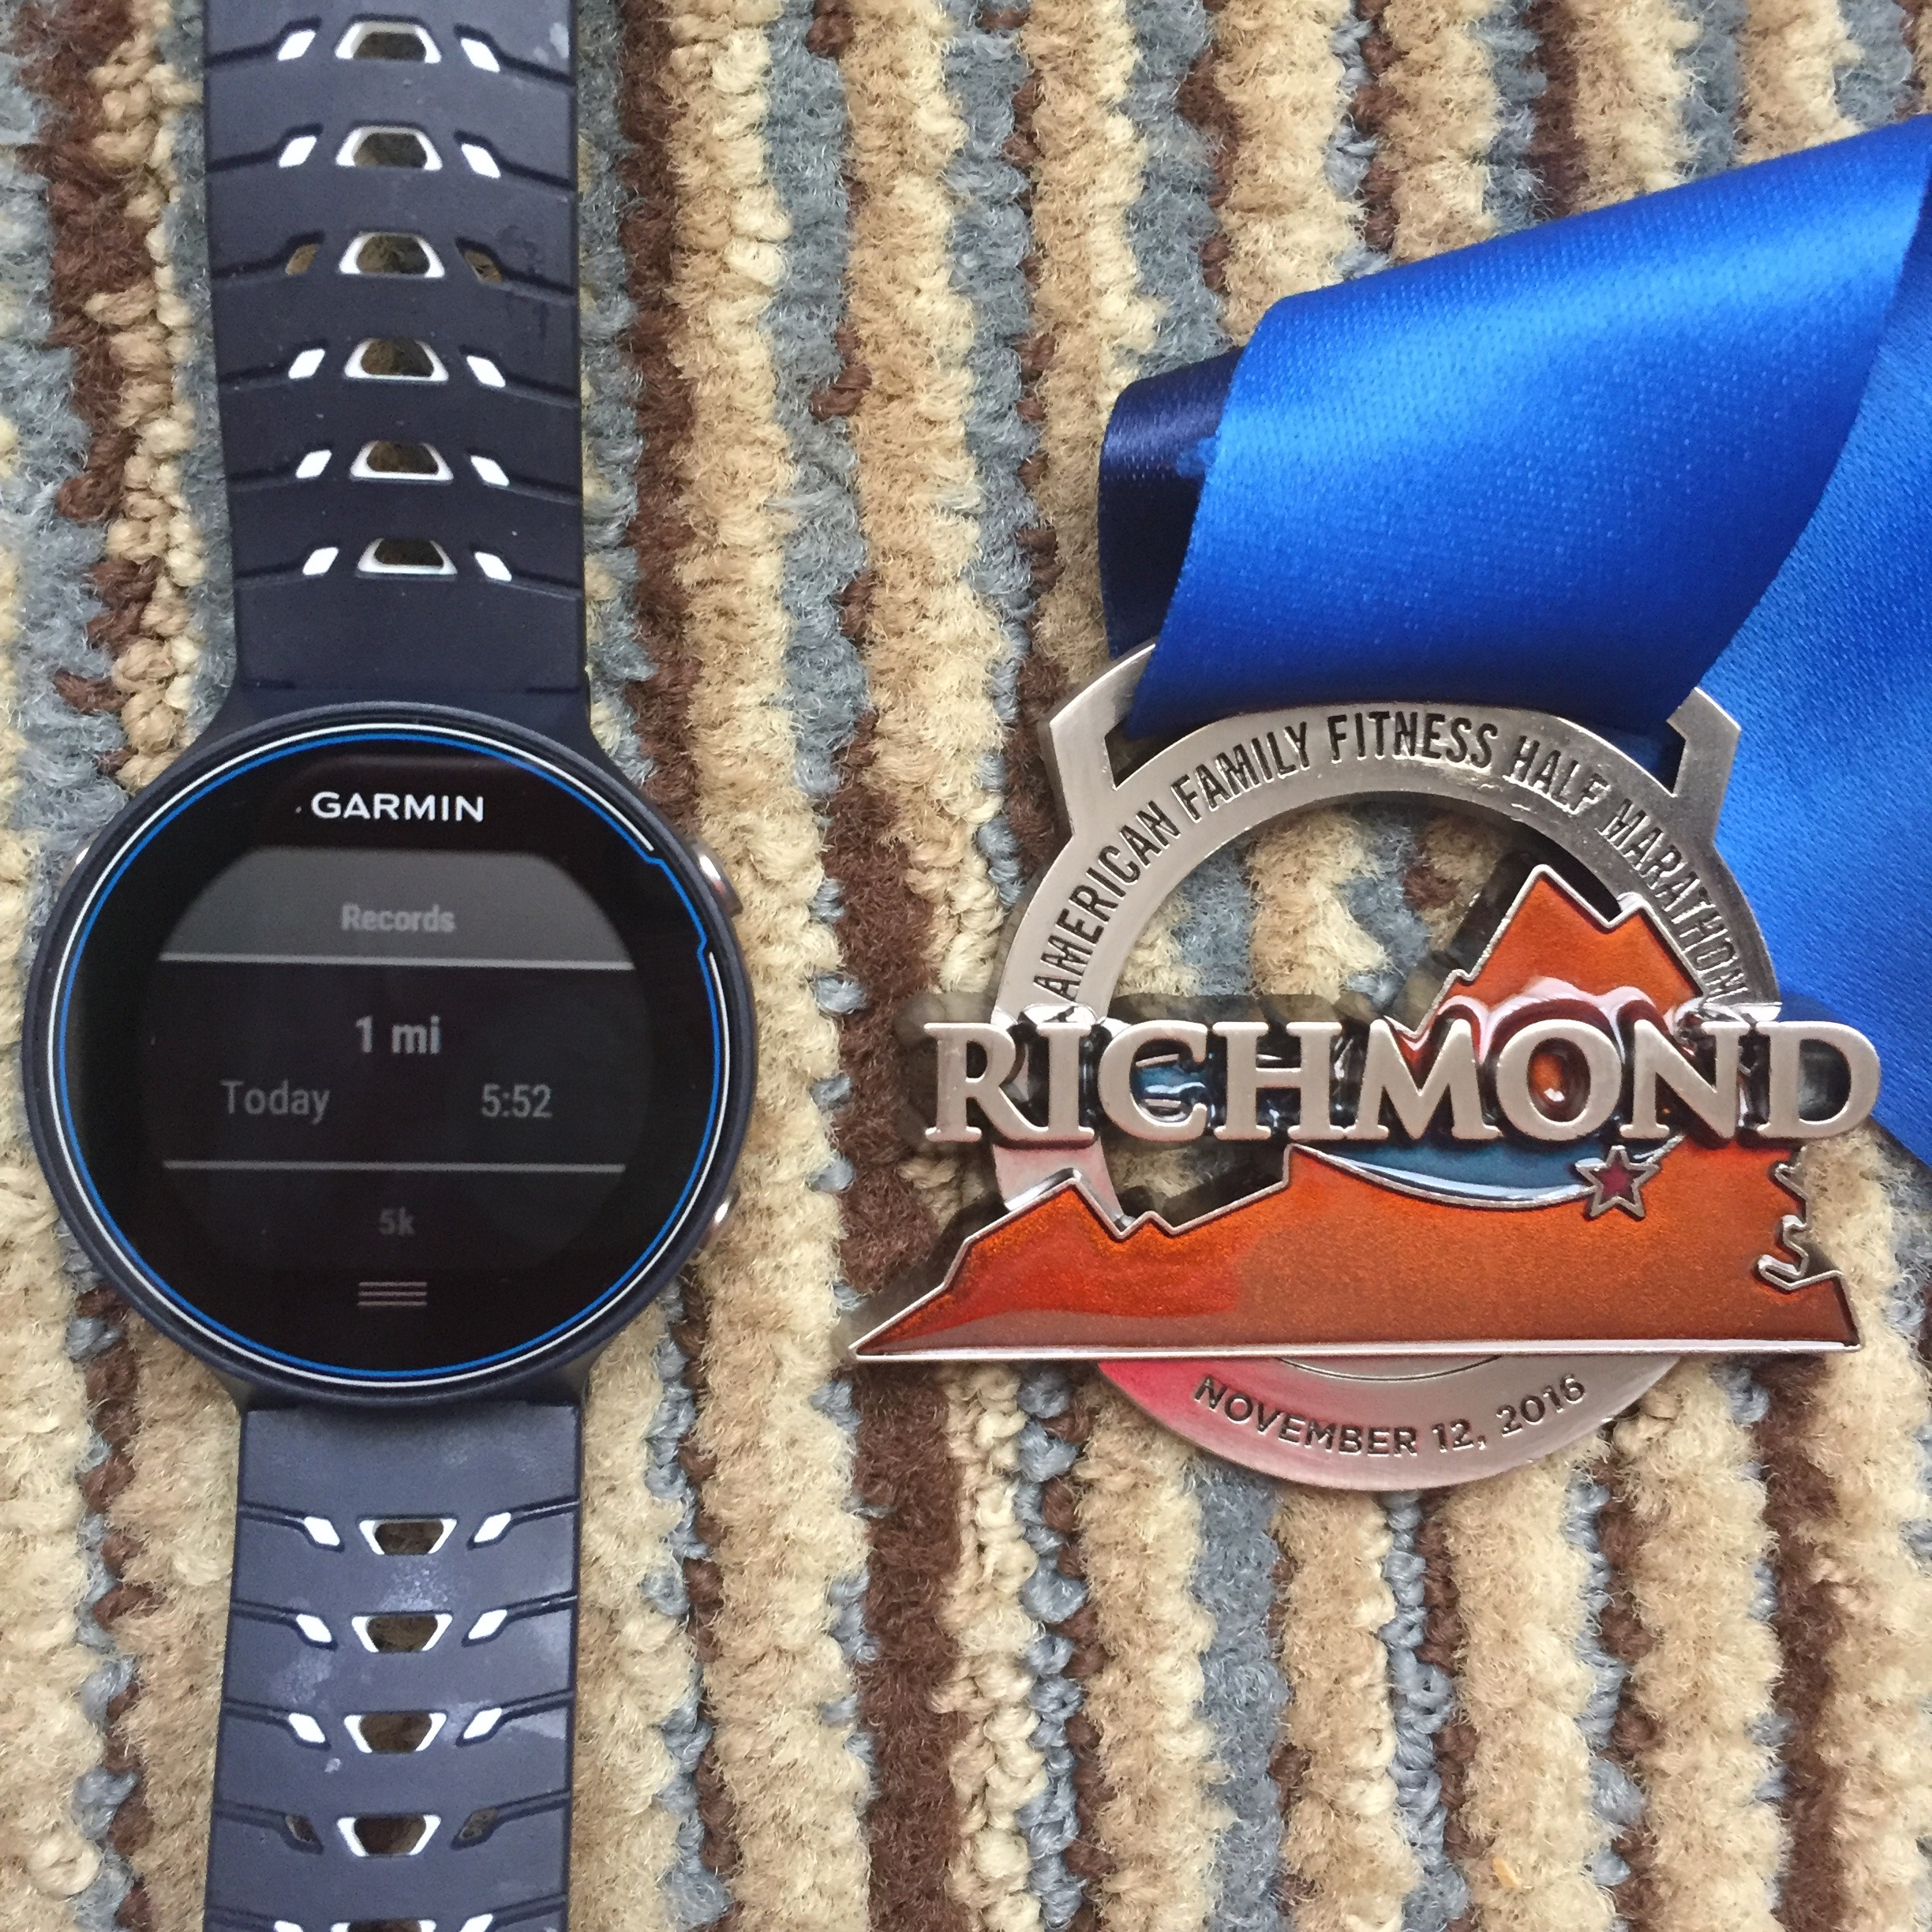 """I just got a new Garmin 630 which is amazing--so much lighter than my old touchscreen Garmin (which was so big it didn't quite fit my wrist and so heavy that I'd finish long races with a big mark on my wrist)! This was the second race I've worn this; going to get a new mile """"record"""" as soon as I race a shorter distance, but a record is satisfying nonetheless."""